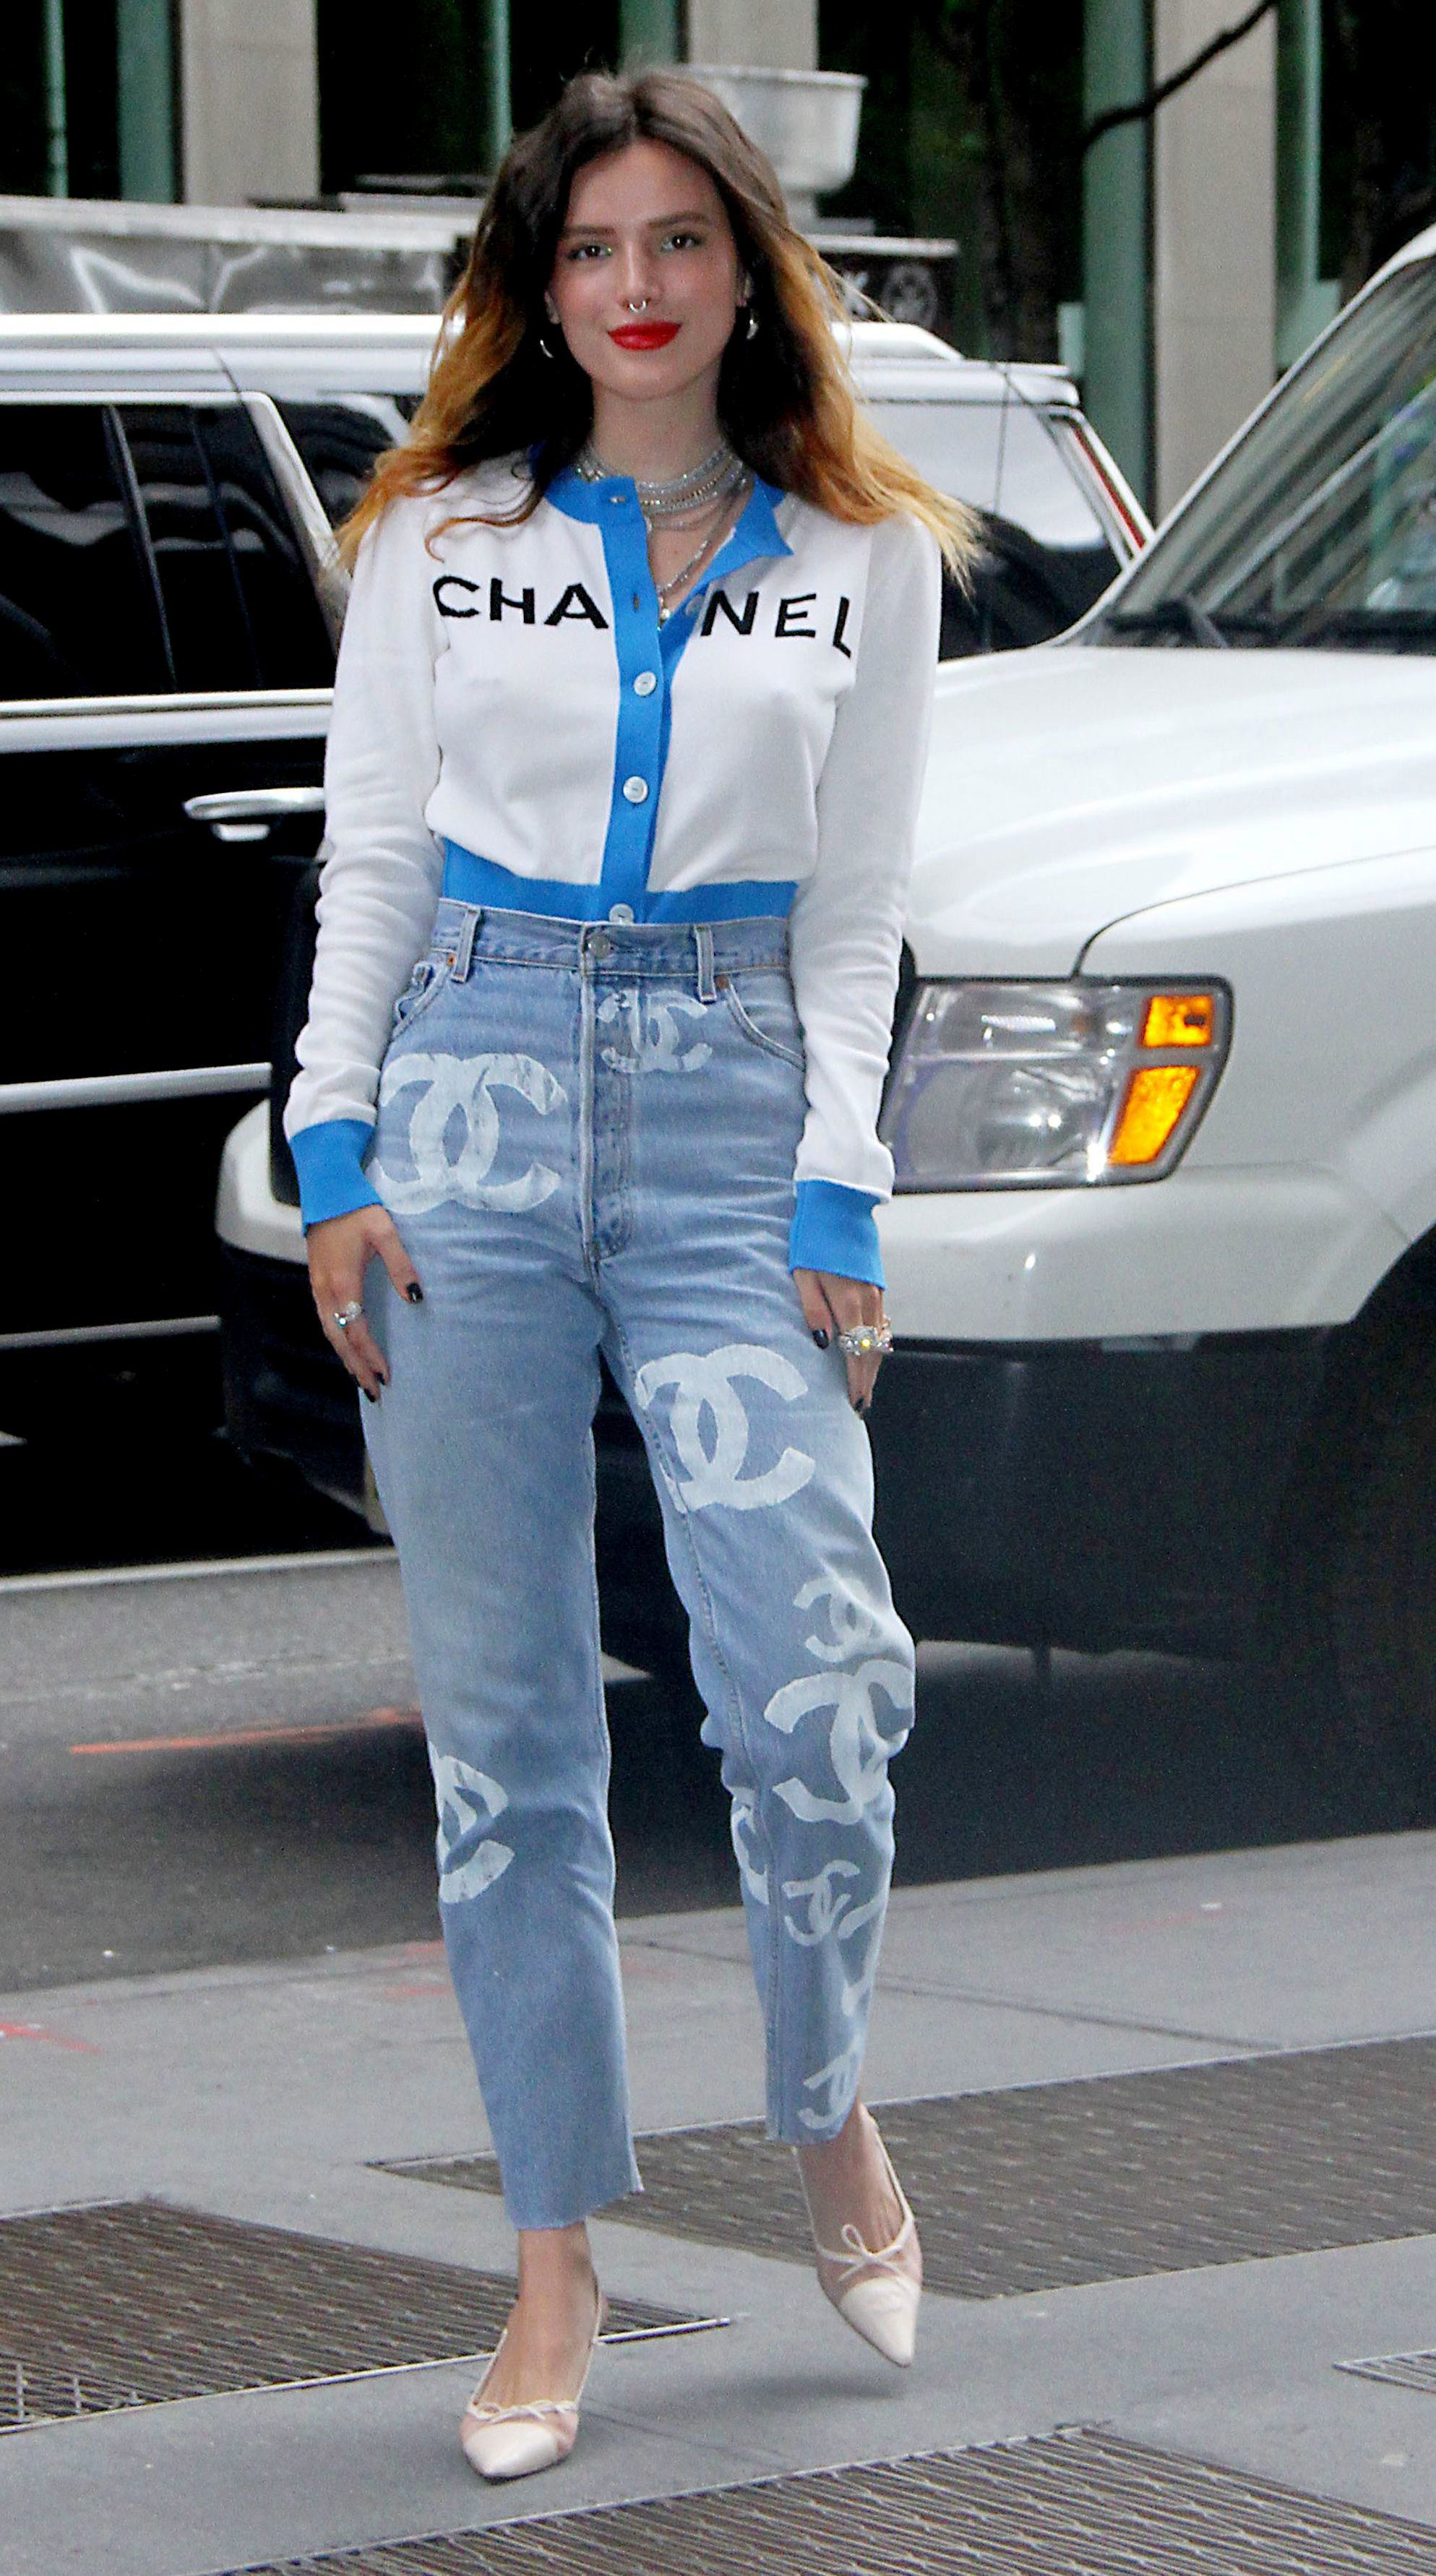 Bella Thorne is spotted out and about in New York City on June 14, 2019.